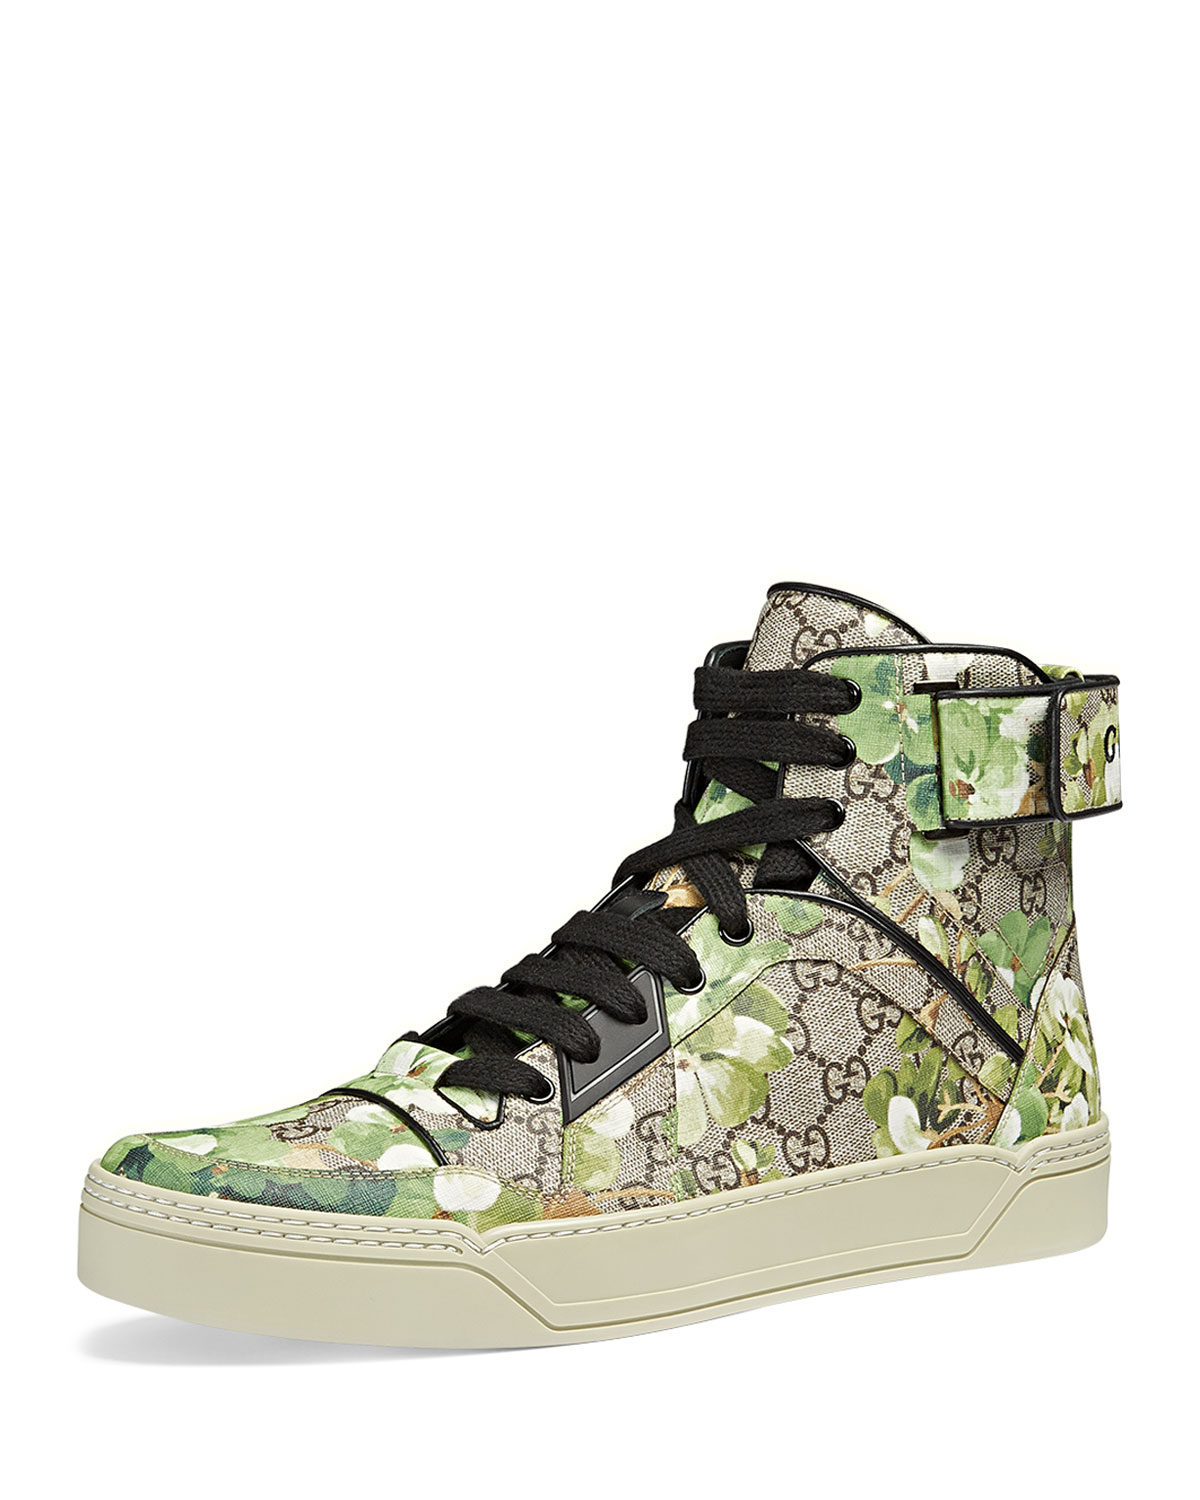 905ea508af3213 Gucci Blooms Printed Canvas High-Top Sneaker